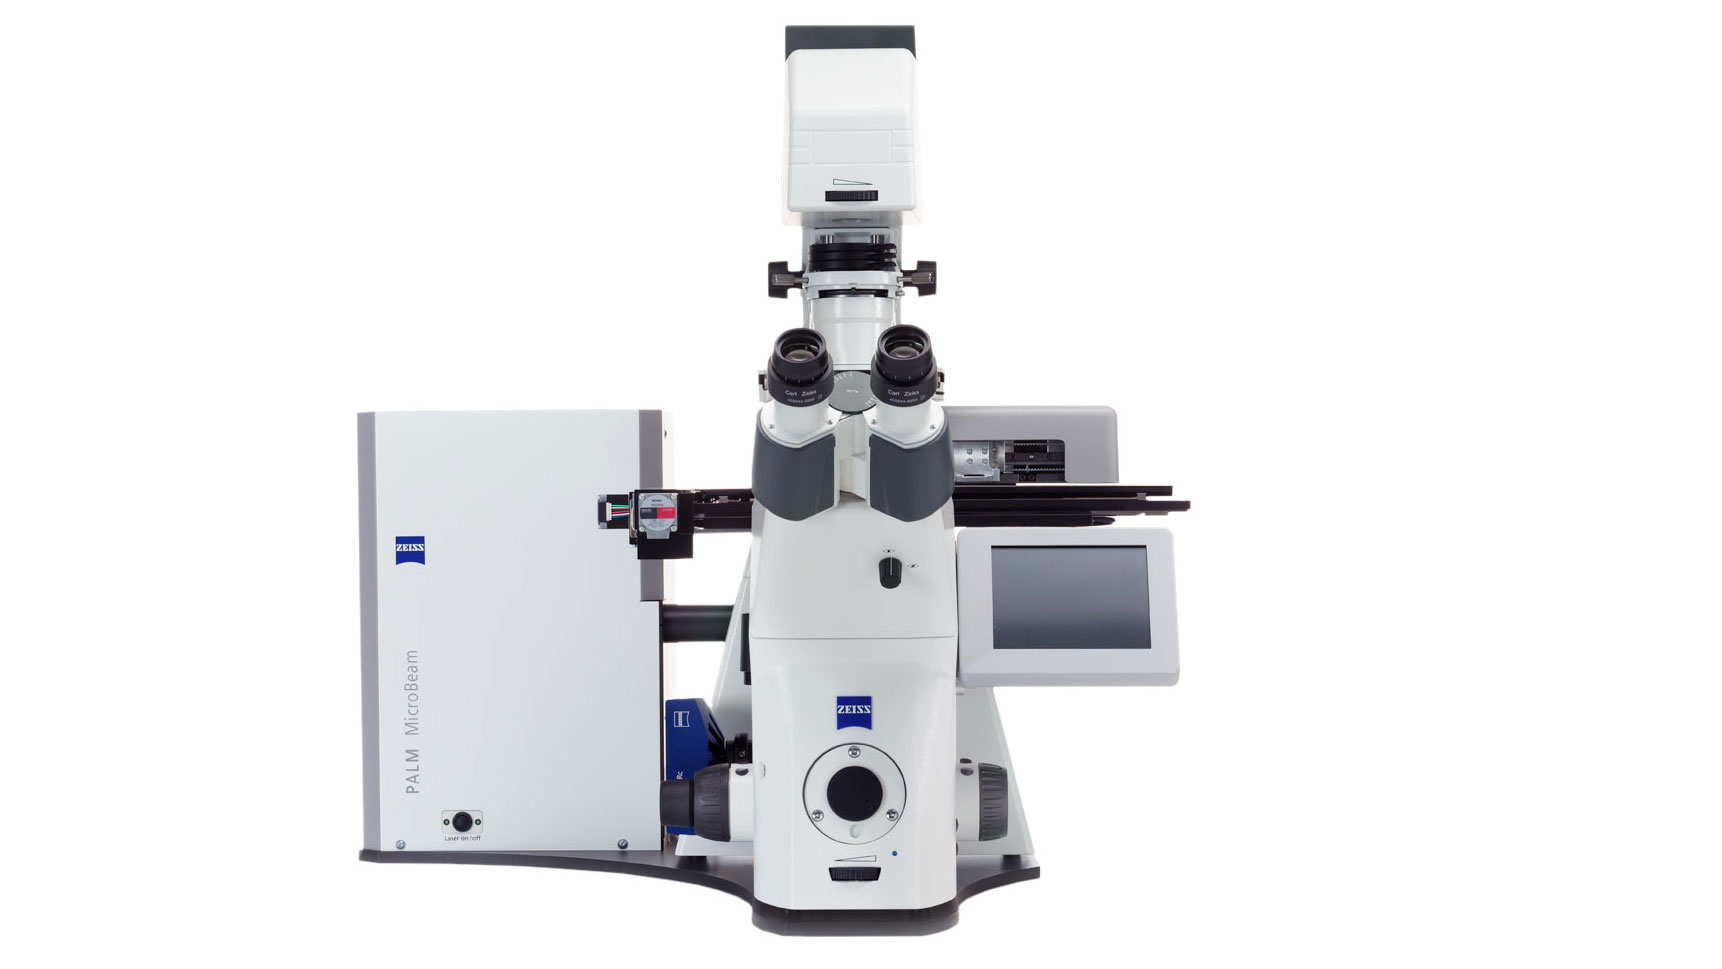 ZEISS PALM MicroBeam – Laser Microsdissection